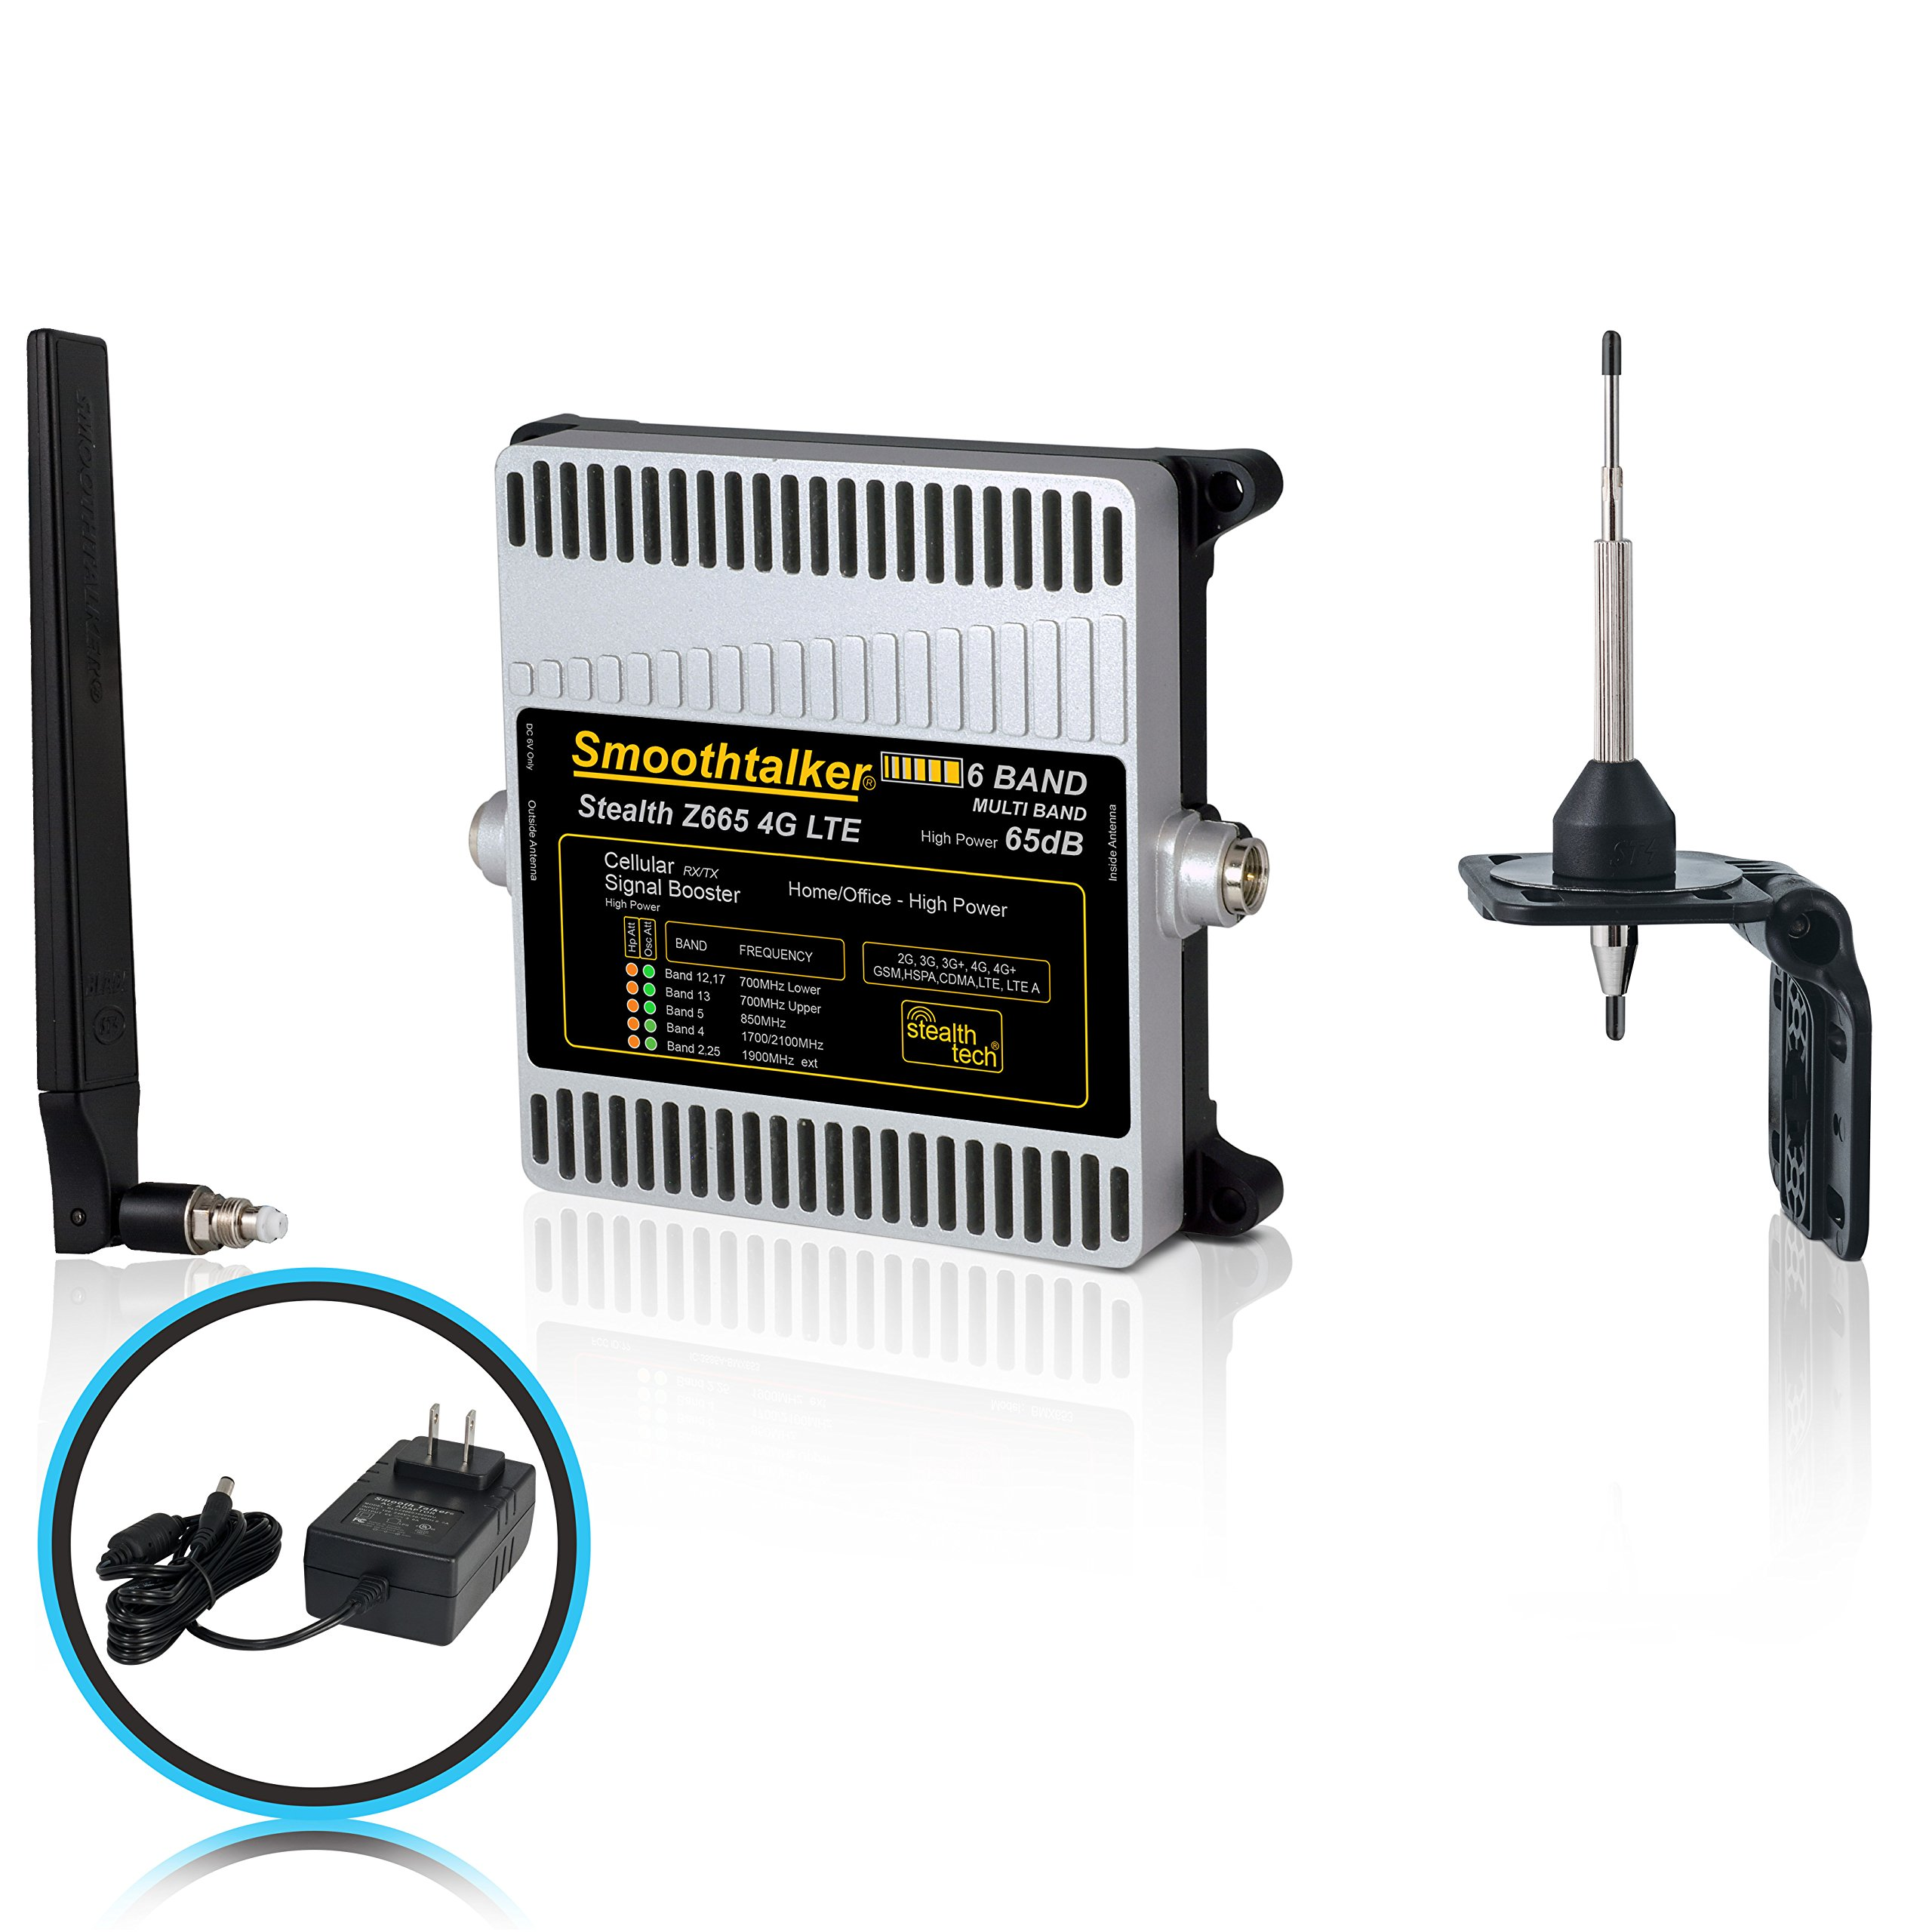 Smoothtalker Stealth Z6 65dB 4G LTE High Power 6 Band Cellular Signal Booster Kit. Covers up to 6500 sq. ft.